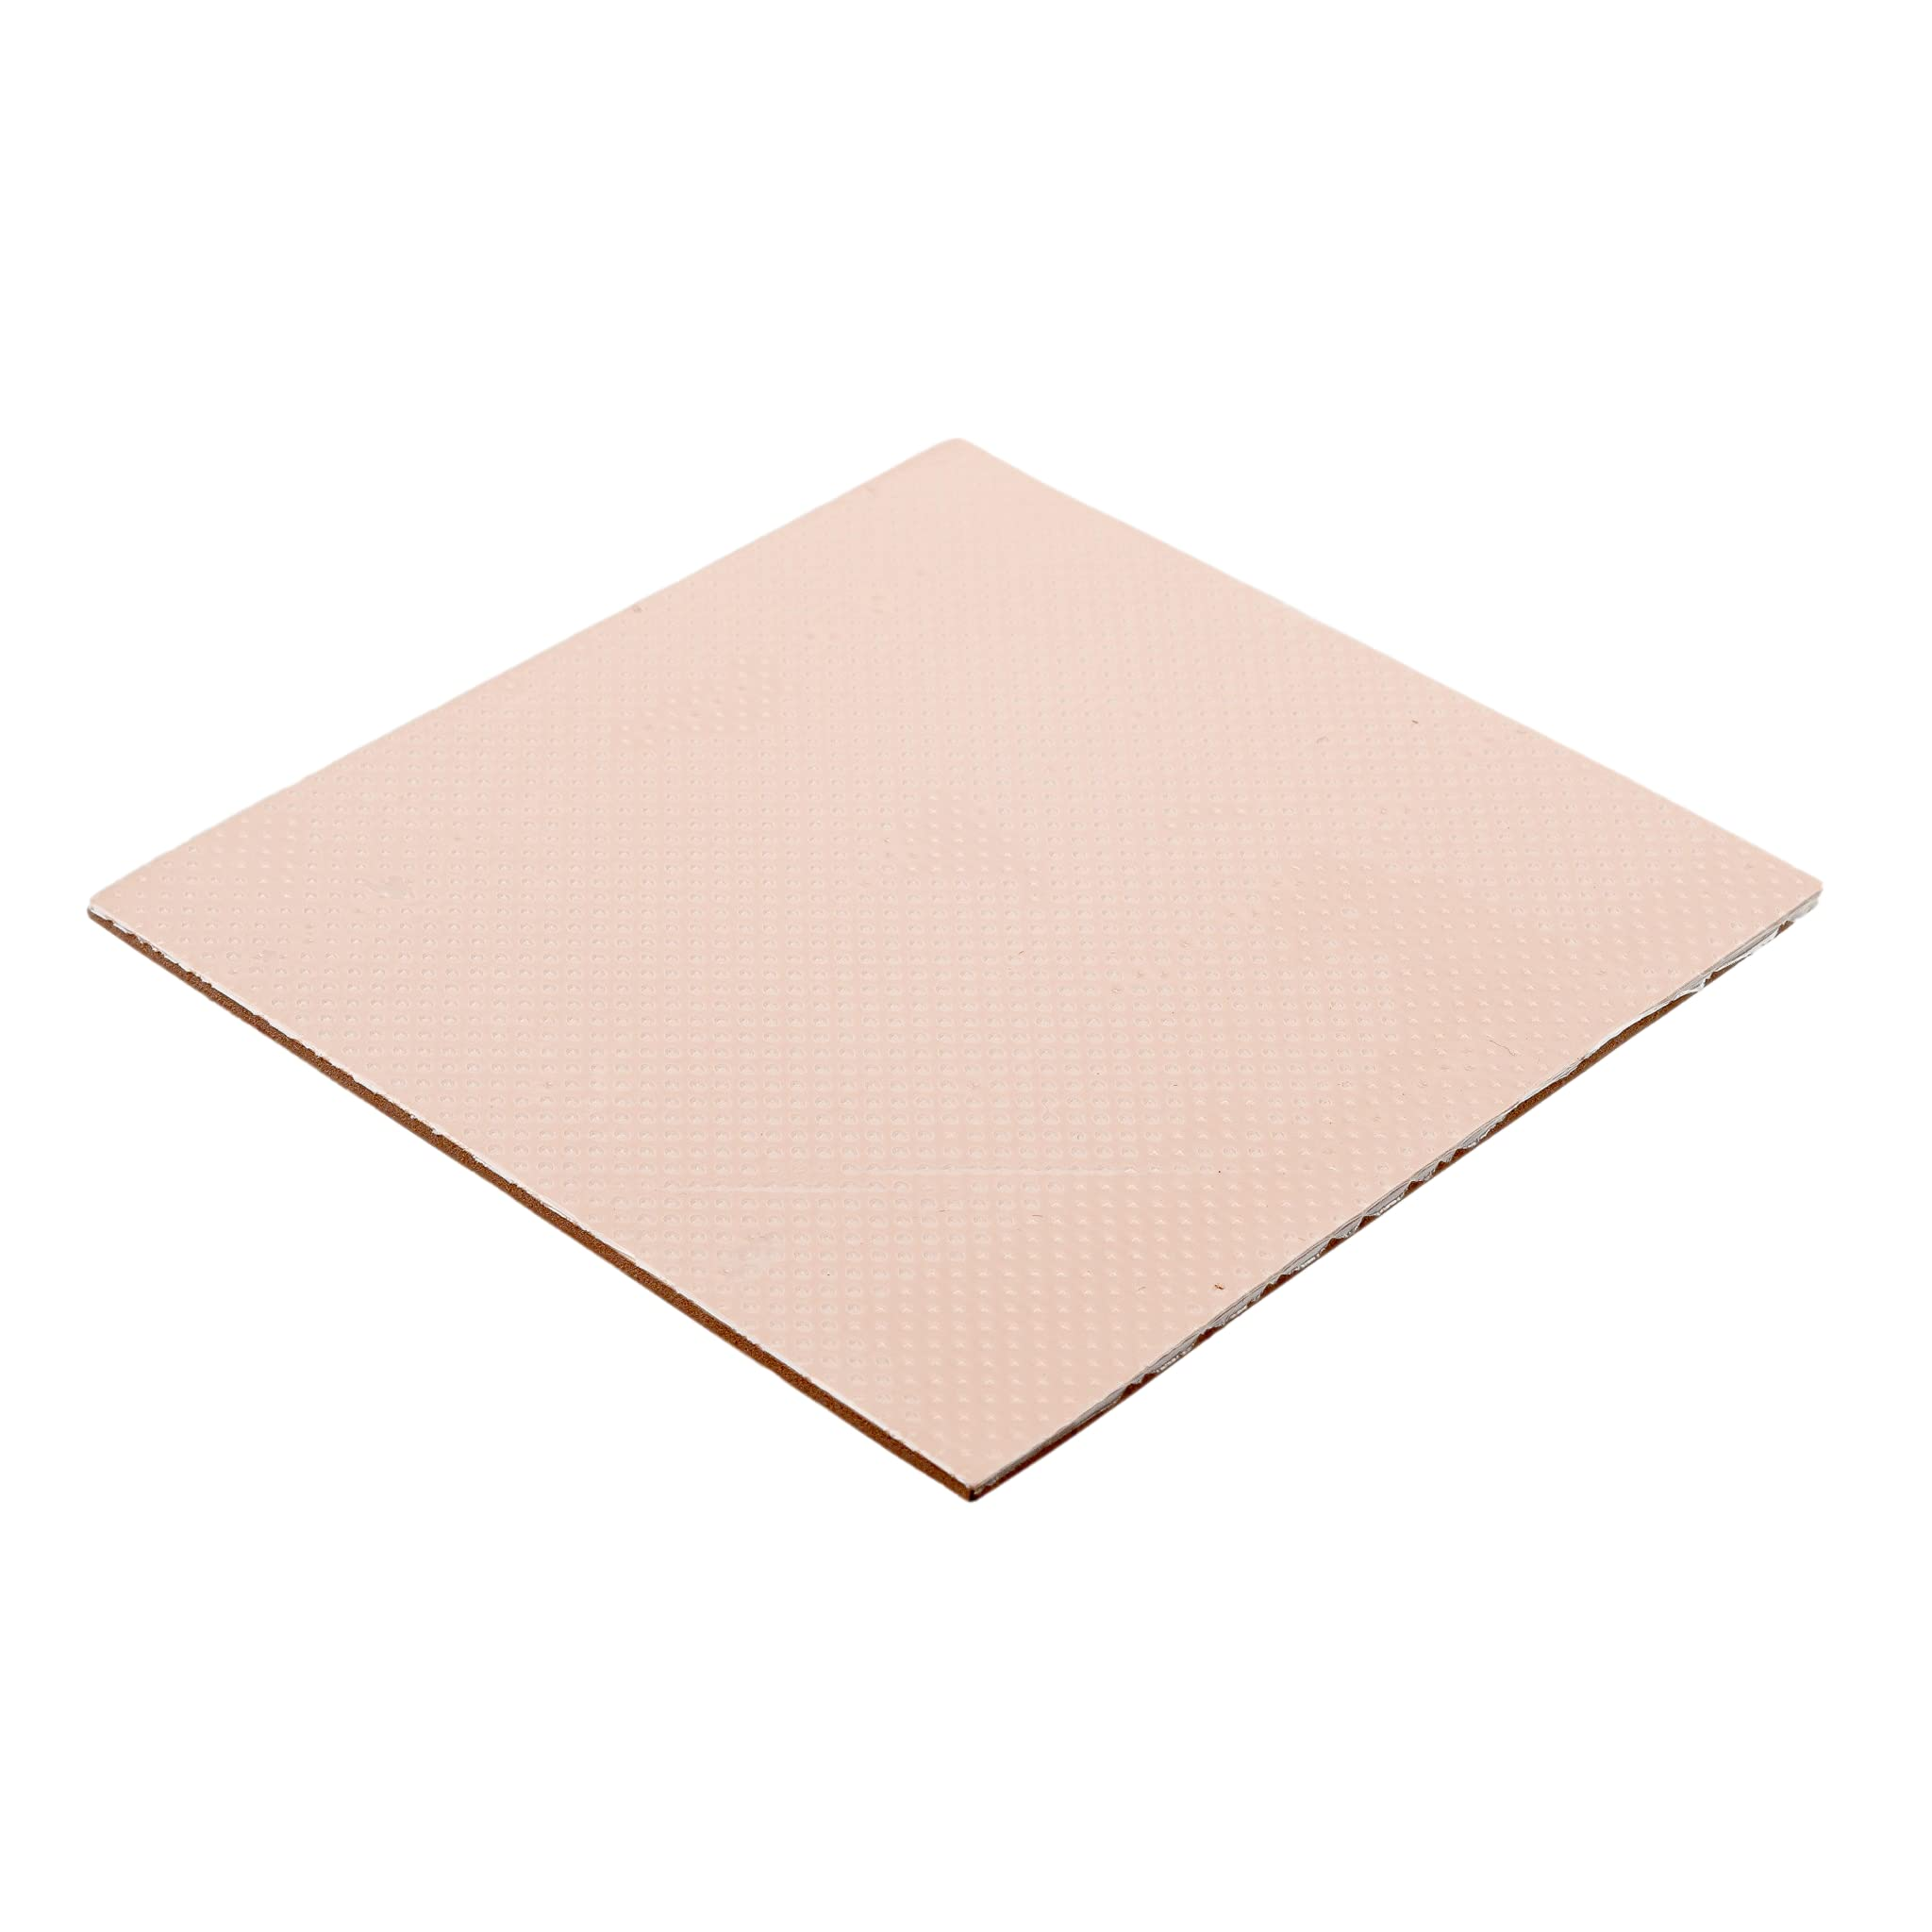 Thermal Grizzly Minus Pad 8 Thermal Pad, 100 × 100 × 2.0 mm